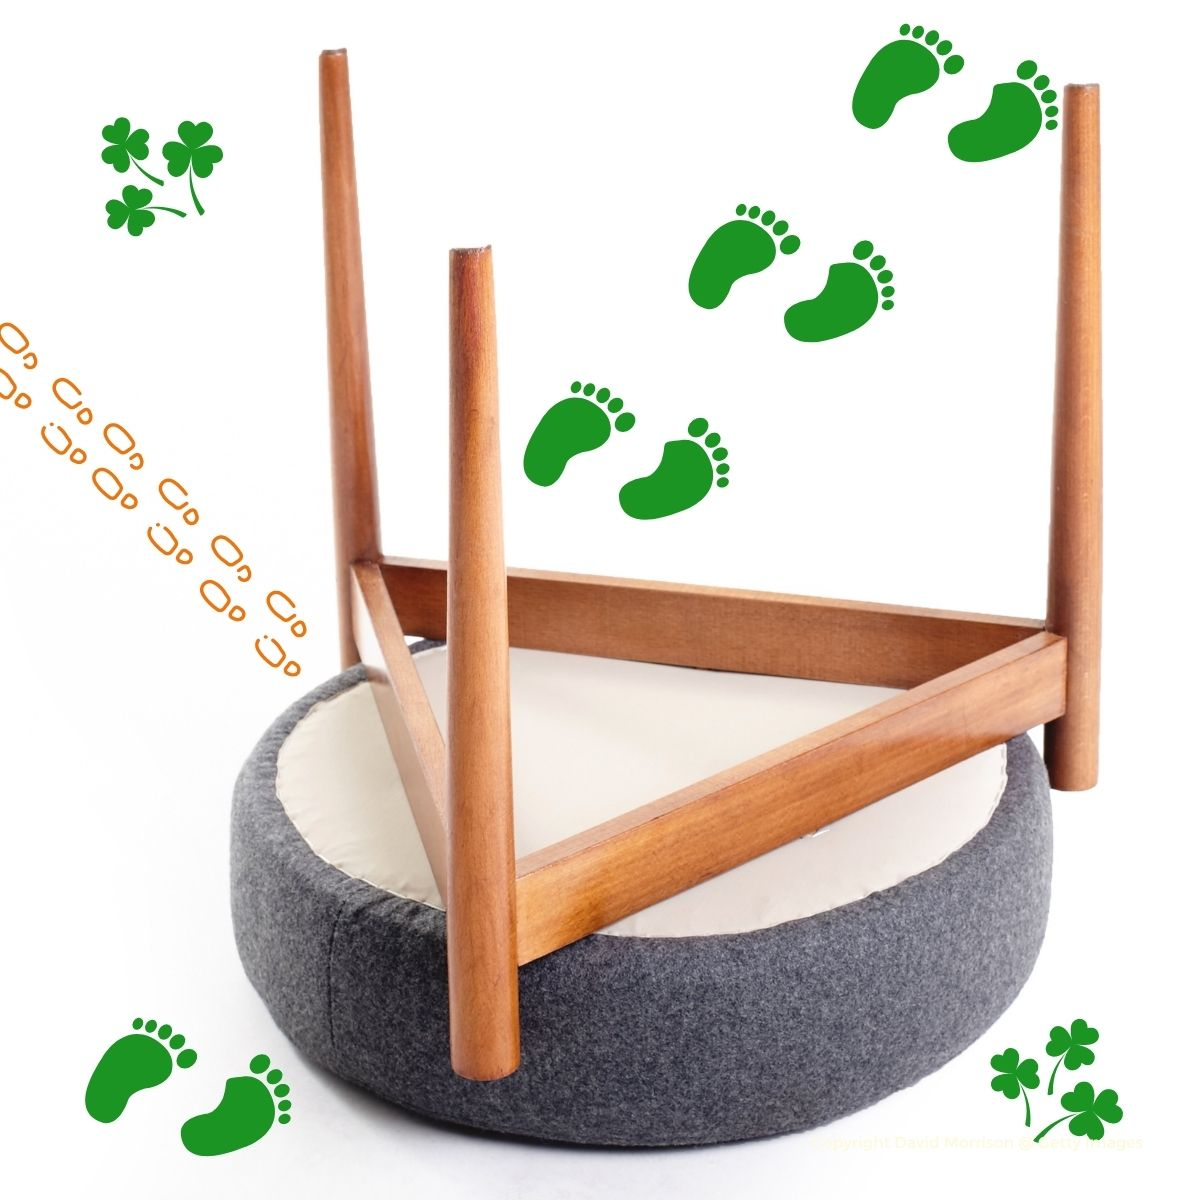 Upside down stool with green and orange footprints plus shamrocks